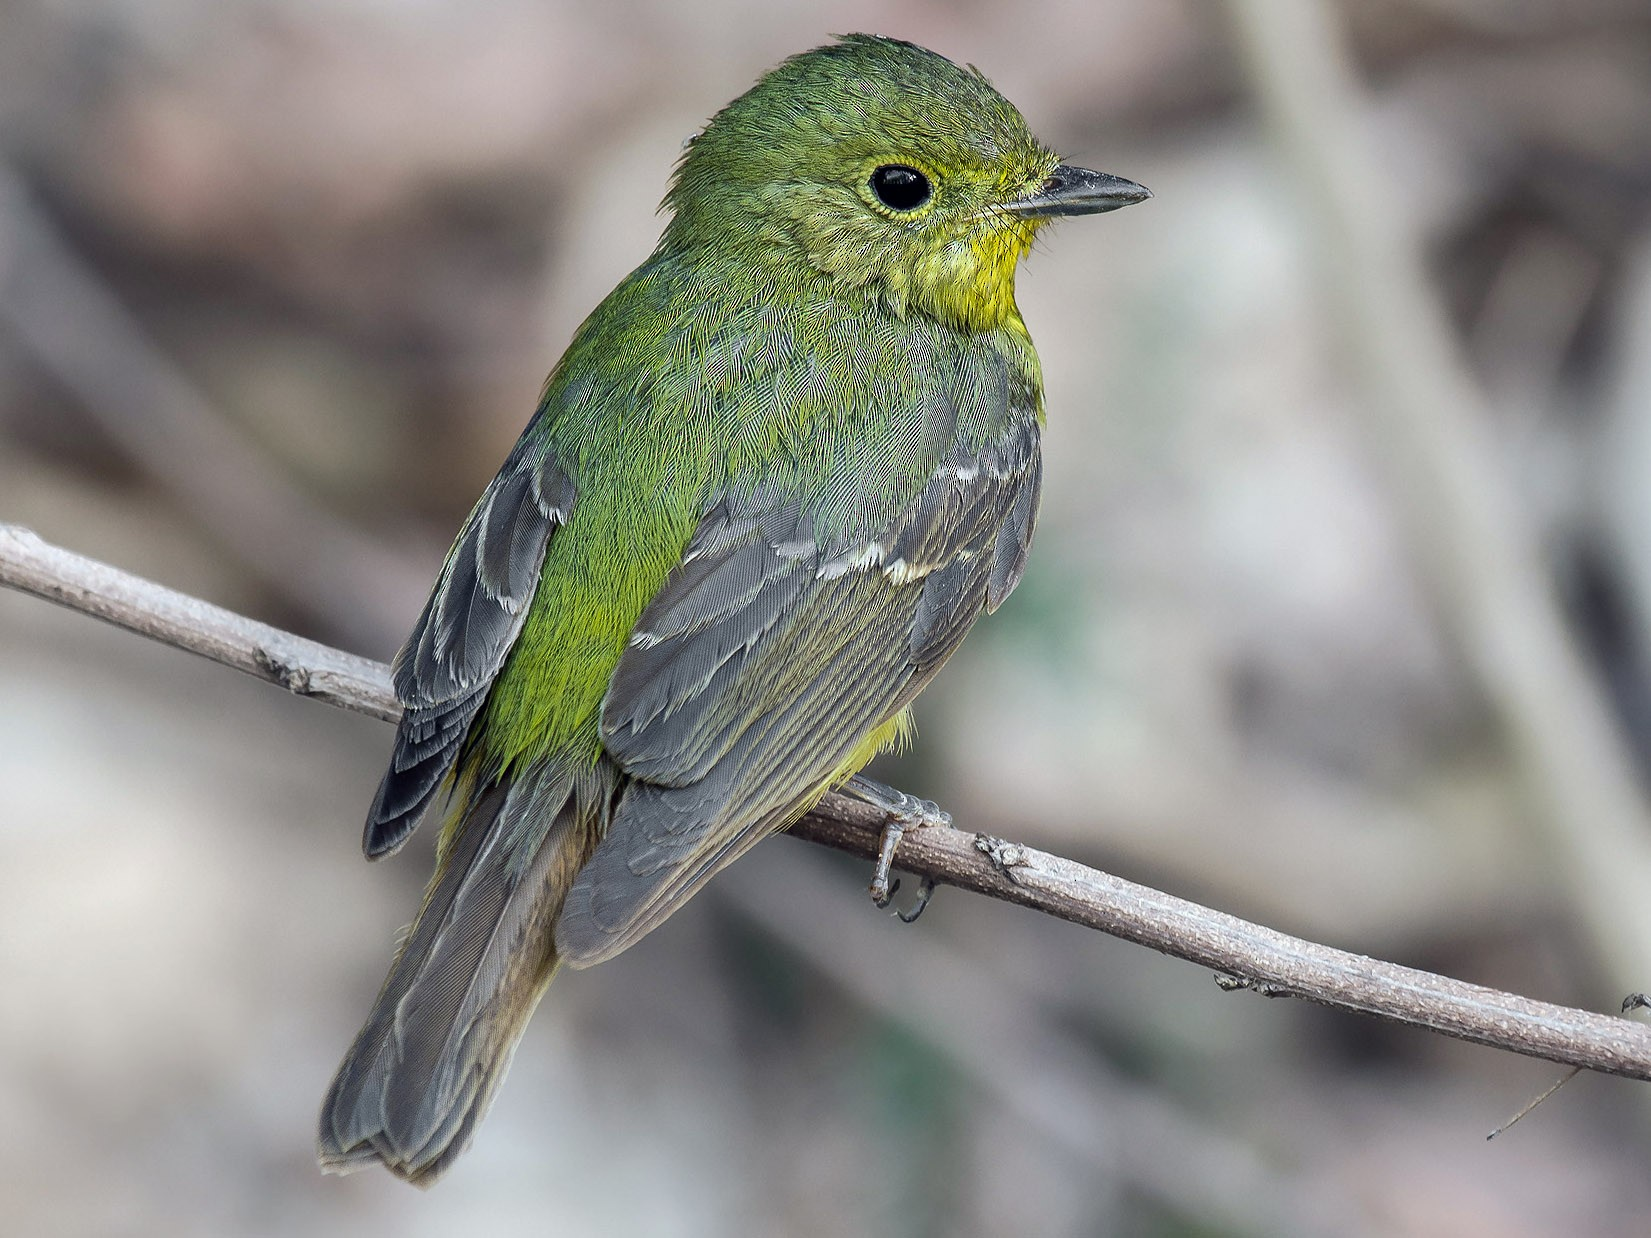 Green-backed Flycatcher - Natthaphat Chotjuckdikul